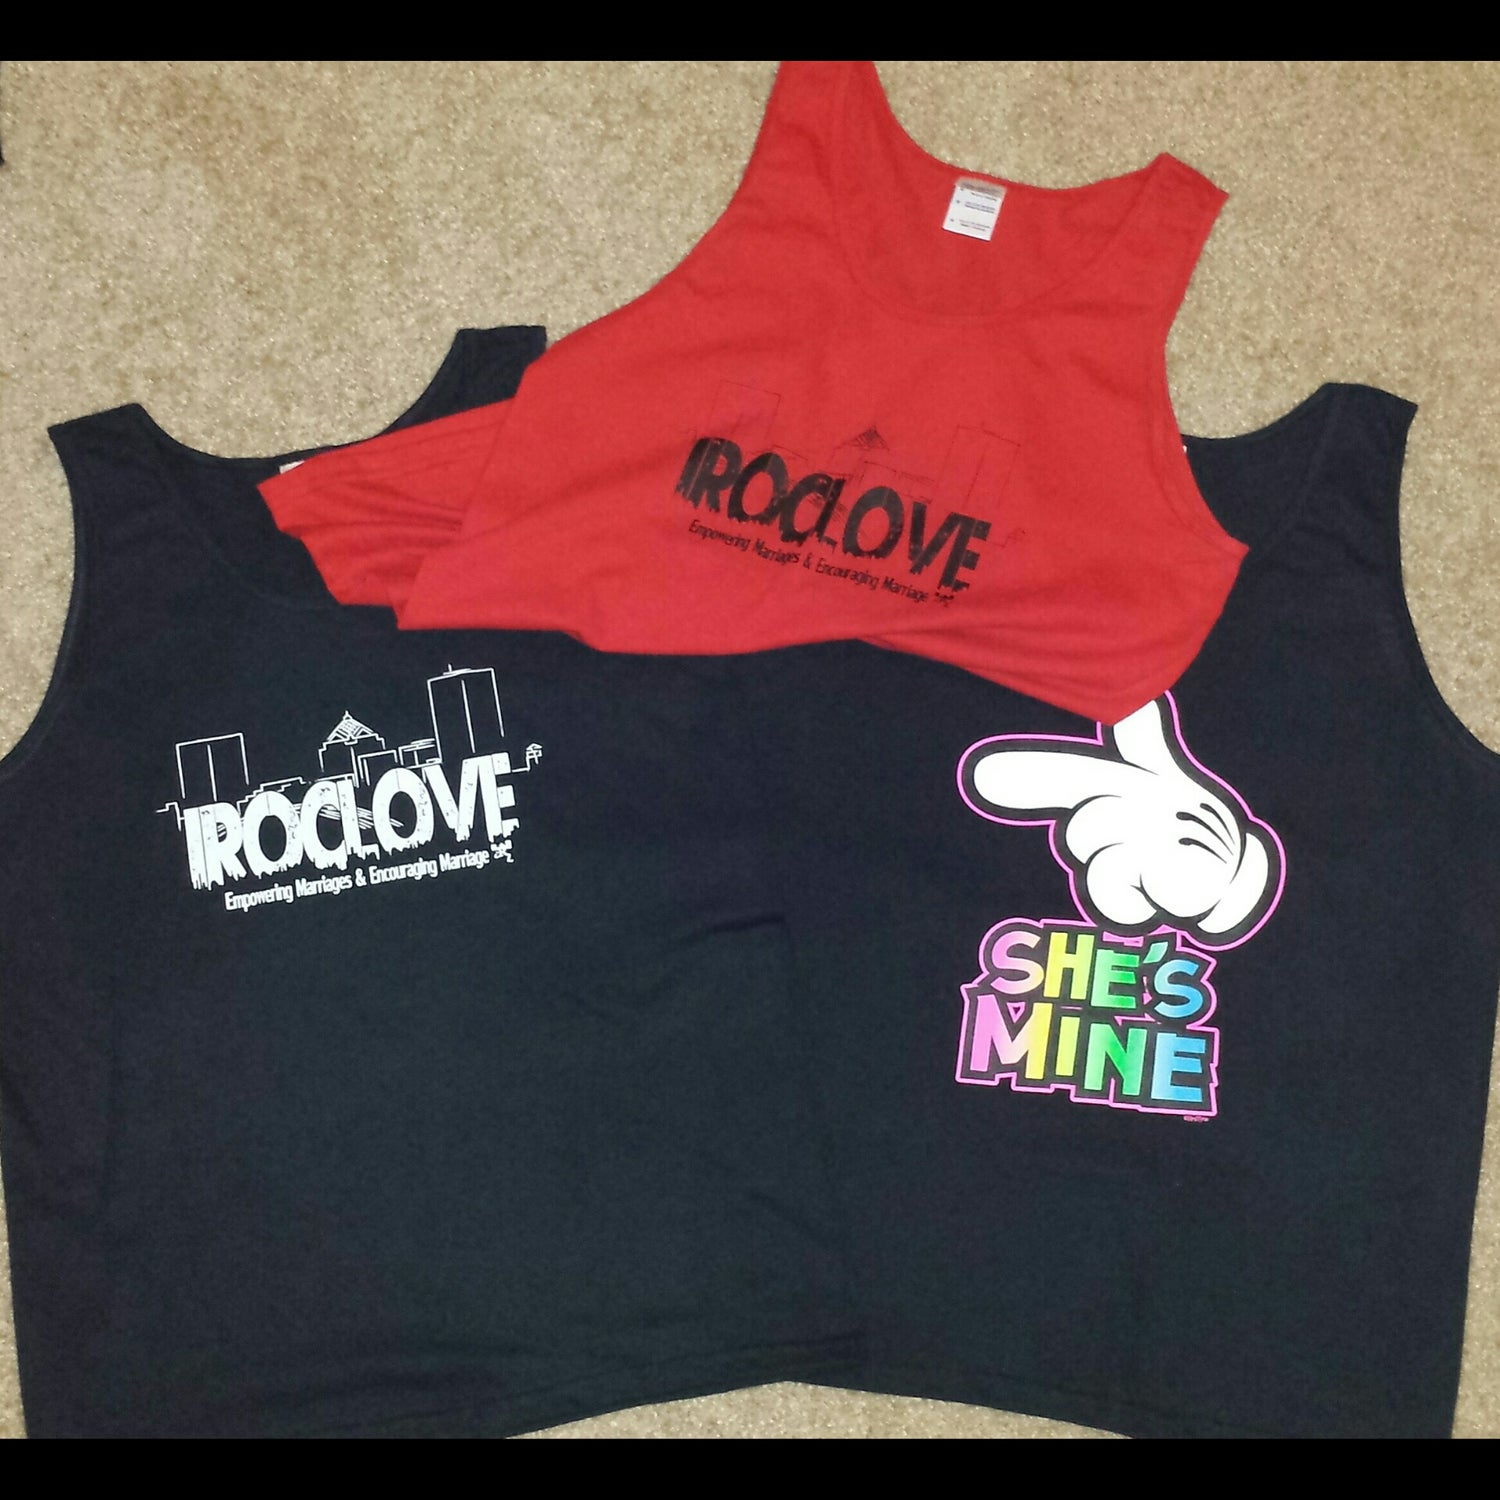 Image of #iRocLove Variety Tank Tops for Men and Women